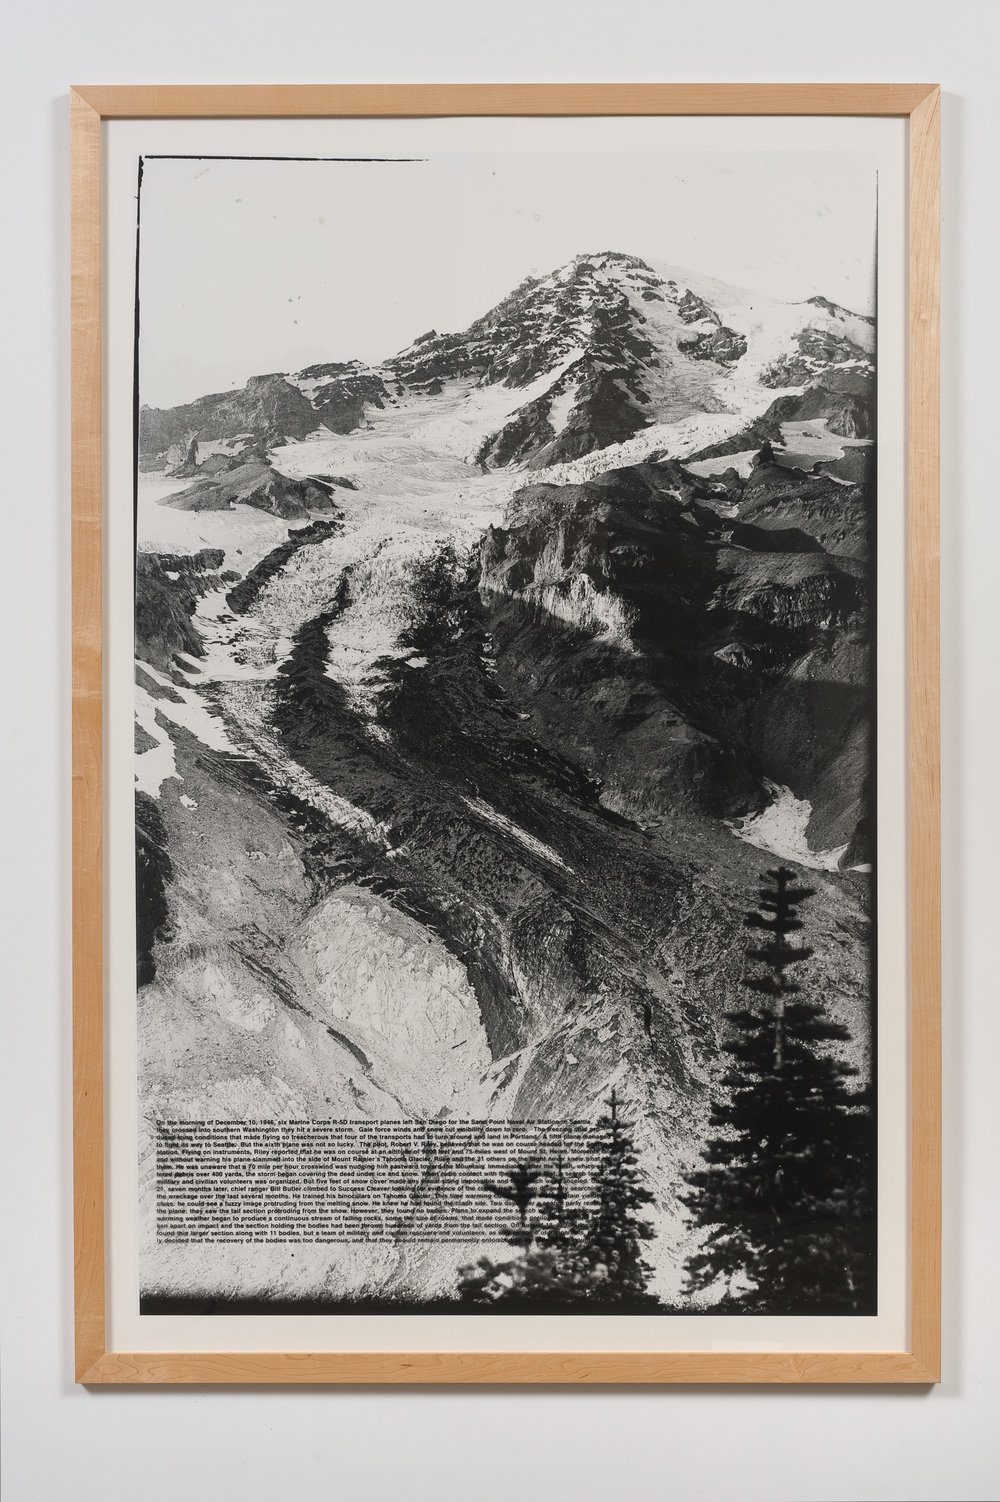 Charles Gaines   Absent Figures: Rainier, Version 2, Marine Transport Files , 2000 Photographs, silk screened text 70 1/8 x 46 7/8 x 7/8 in - 178,12 x 119,06 x 2,22 cm